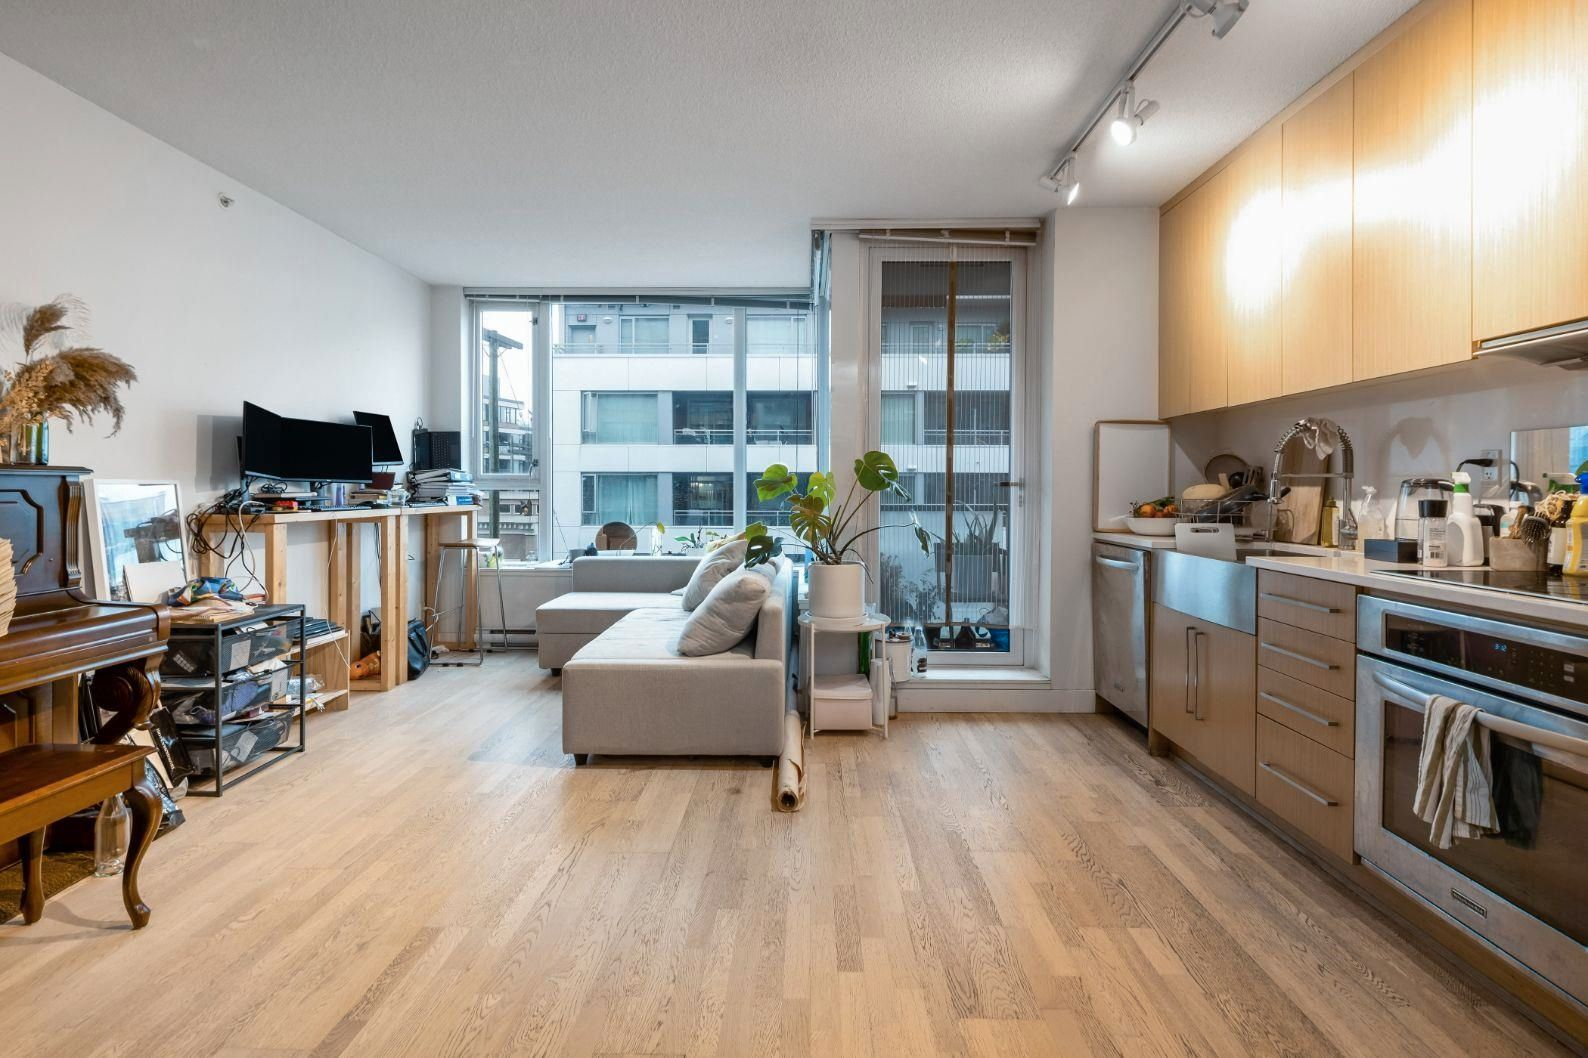 """Main Photo: 456 250 E 6TH Avenue in Vancouver: Mount Pleasant VE Condo for sale in """"DISTRICT"""" (Vancouver East)  : MLS®# R2625152"""